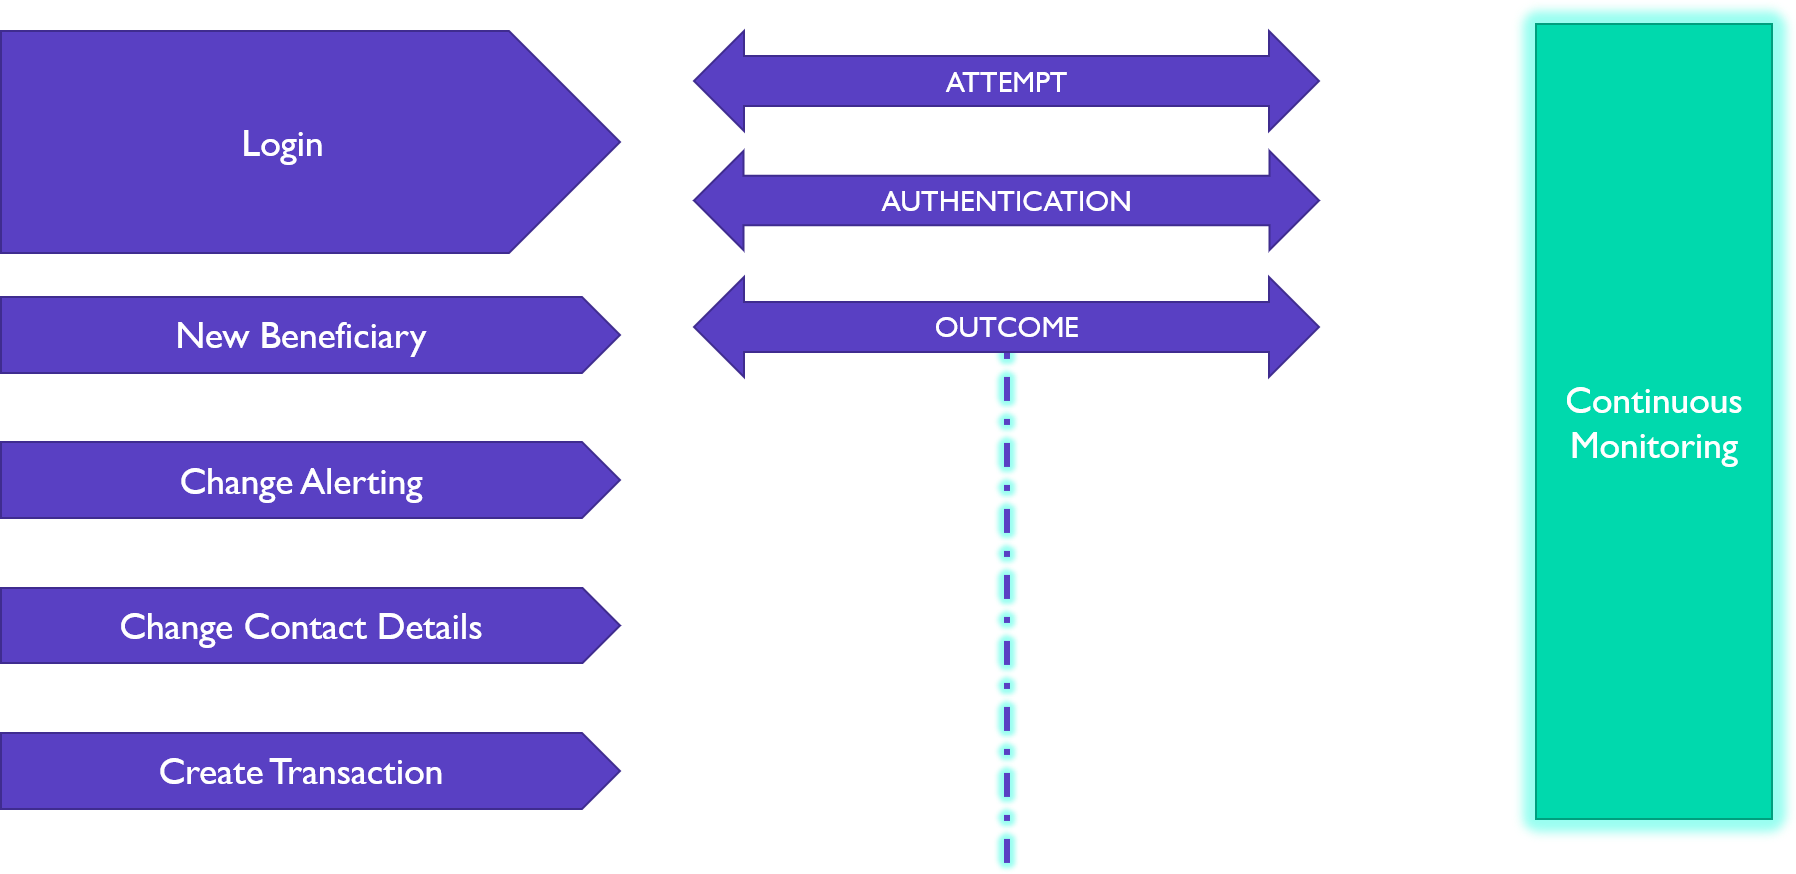 Example of continuous monitoring to understand each operation attempt, authentication and outcome.